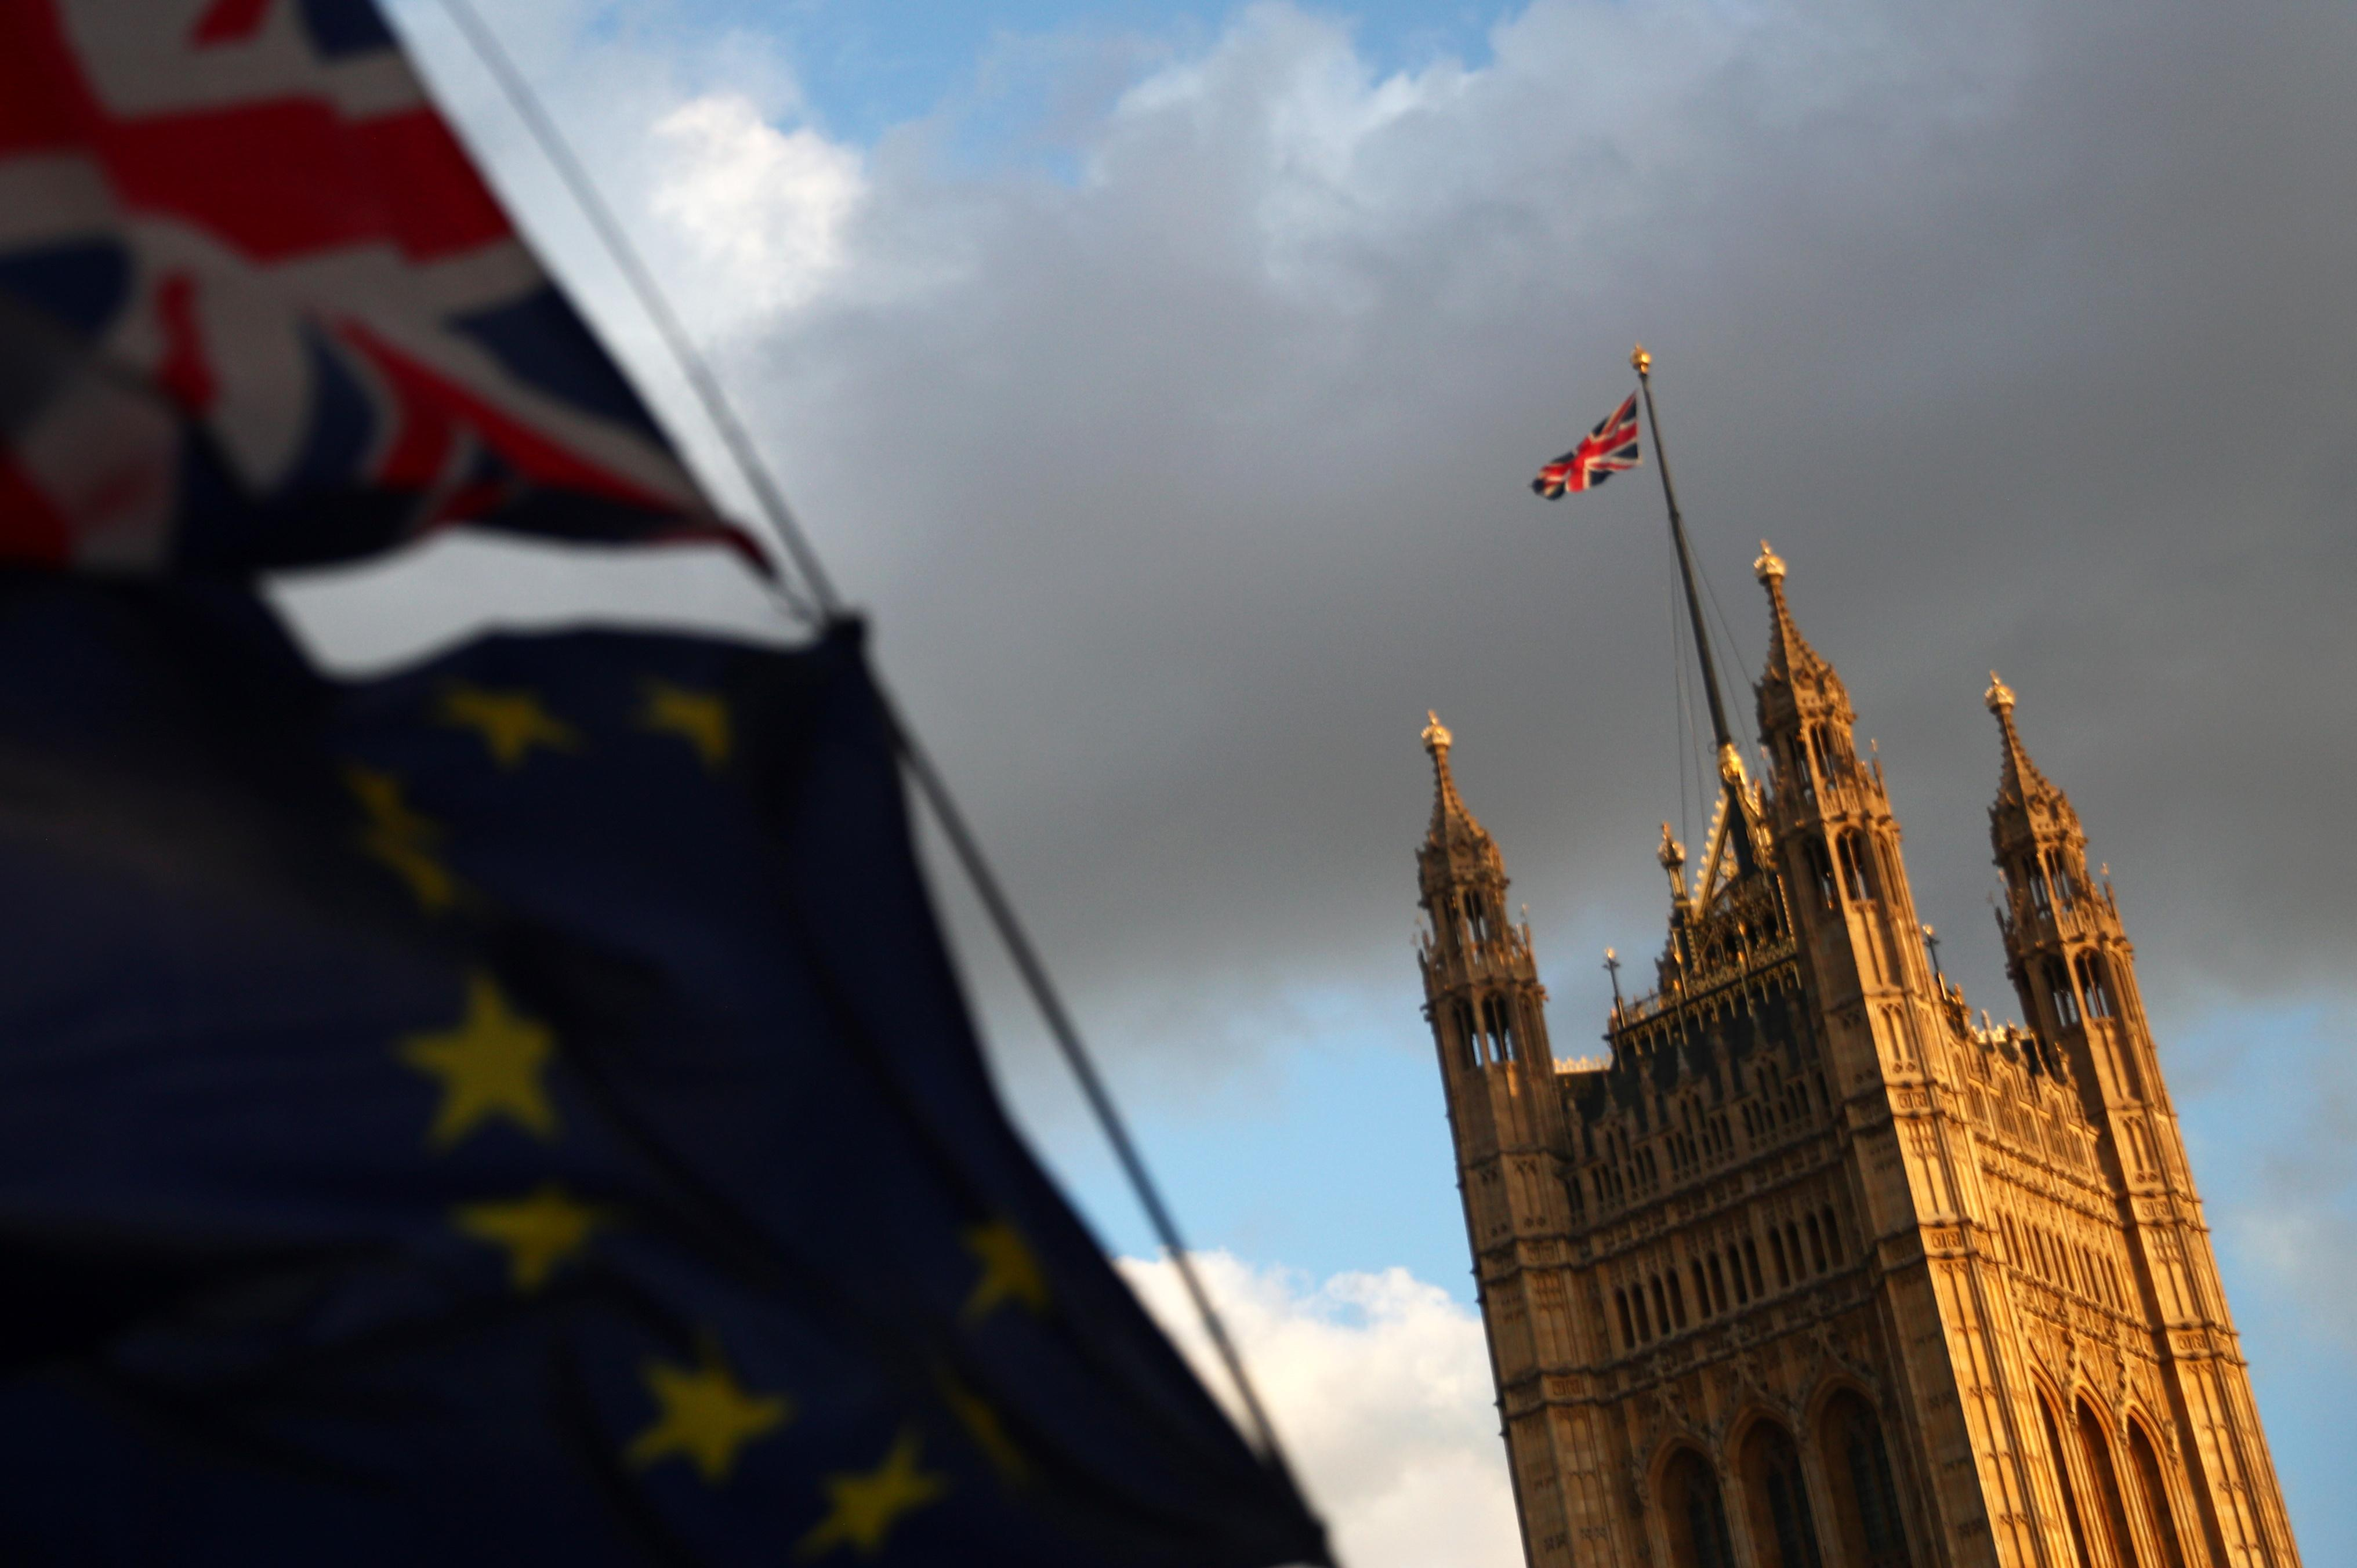 Brexit crisis deepens, court rules parliament suspension unlawful